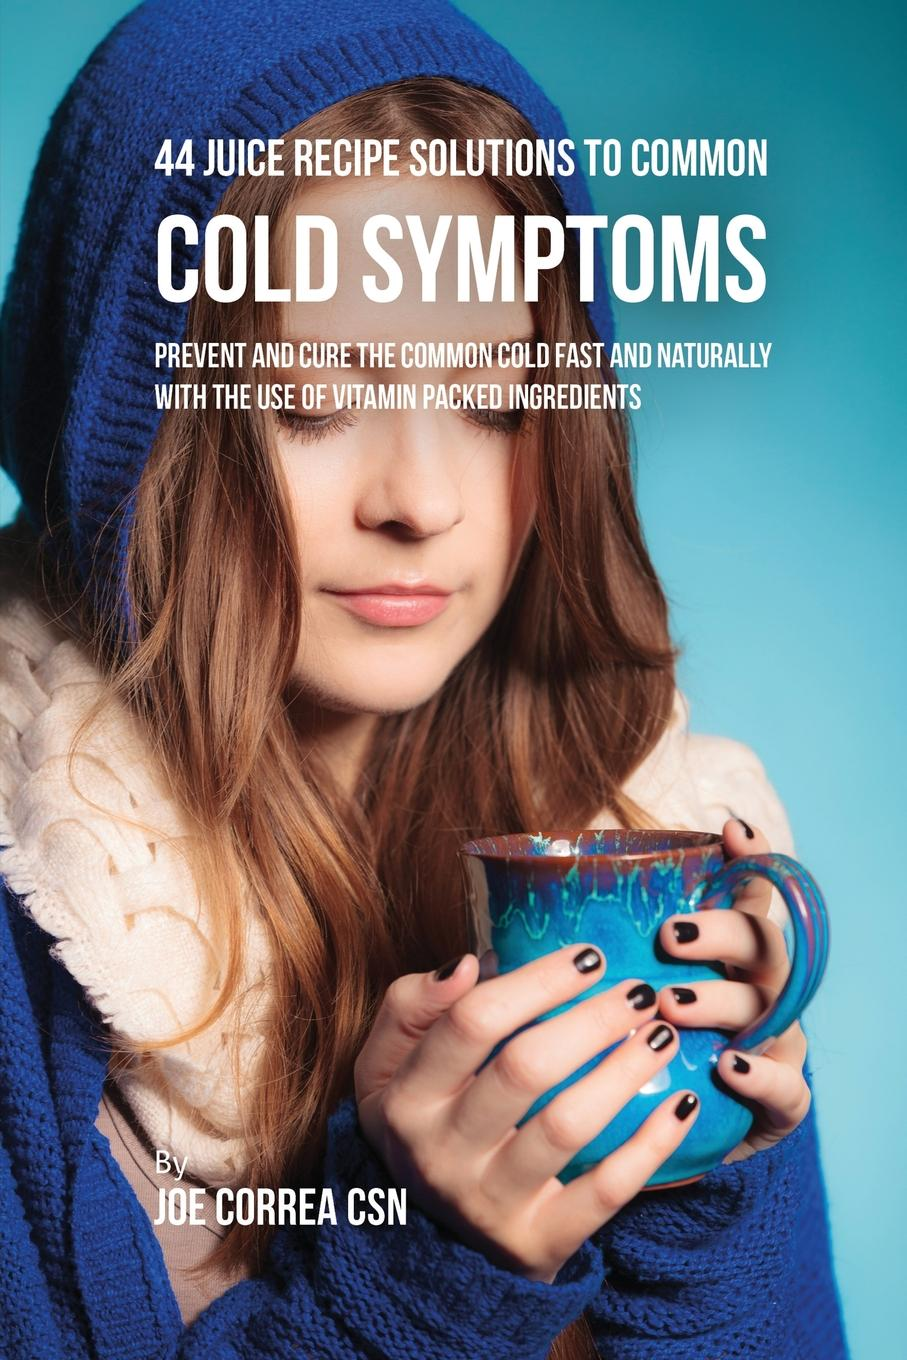 Joe Correa 44 Juice Recipe Solutions to Common Cold Symptoms. Prevent and Cure the Common Cold Fast and Naturally With the Use of Vitamin Packed Ingredients lauren sompayrac m how the immune system works